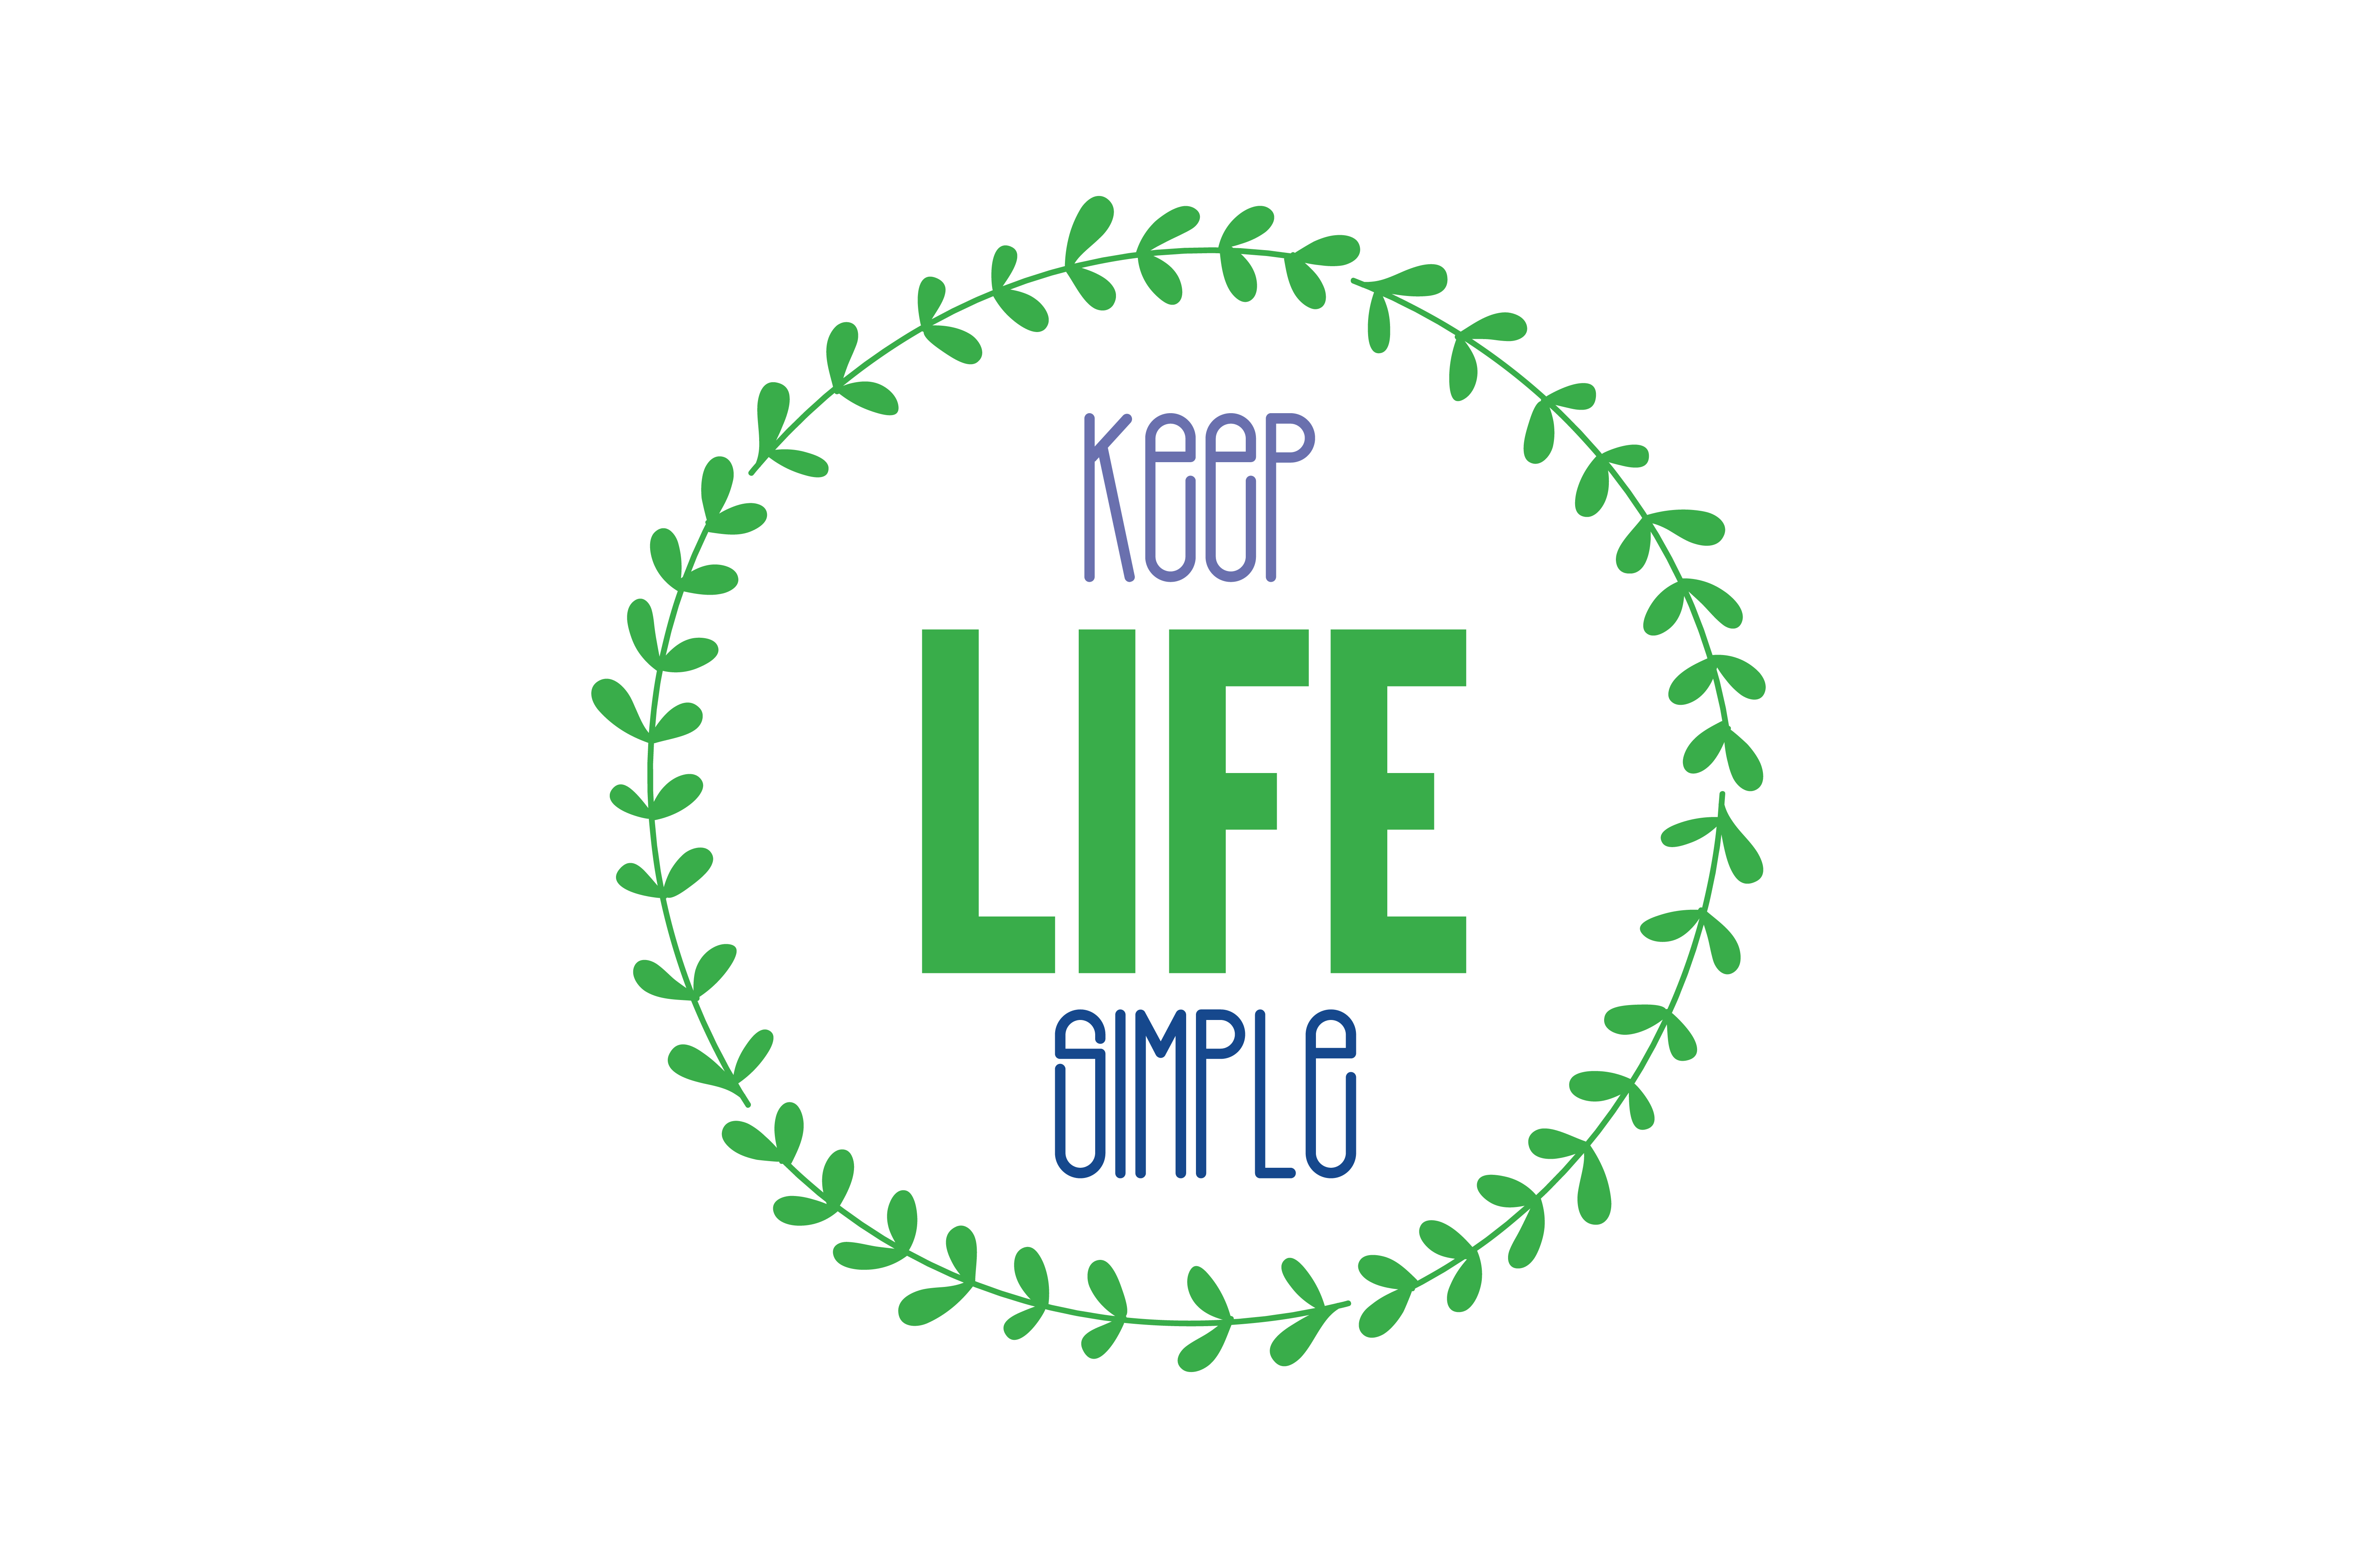 Download Free Keep Life Simple Svg Cut Quote Graphic By Thelucky Creative for Cricut Explore, Silhouette and other cutting machines.